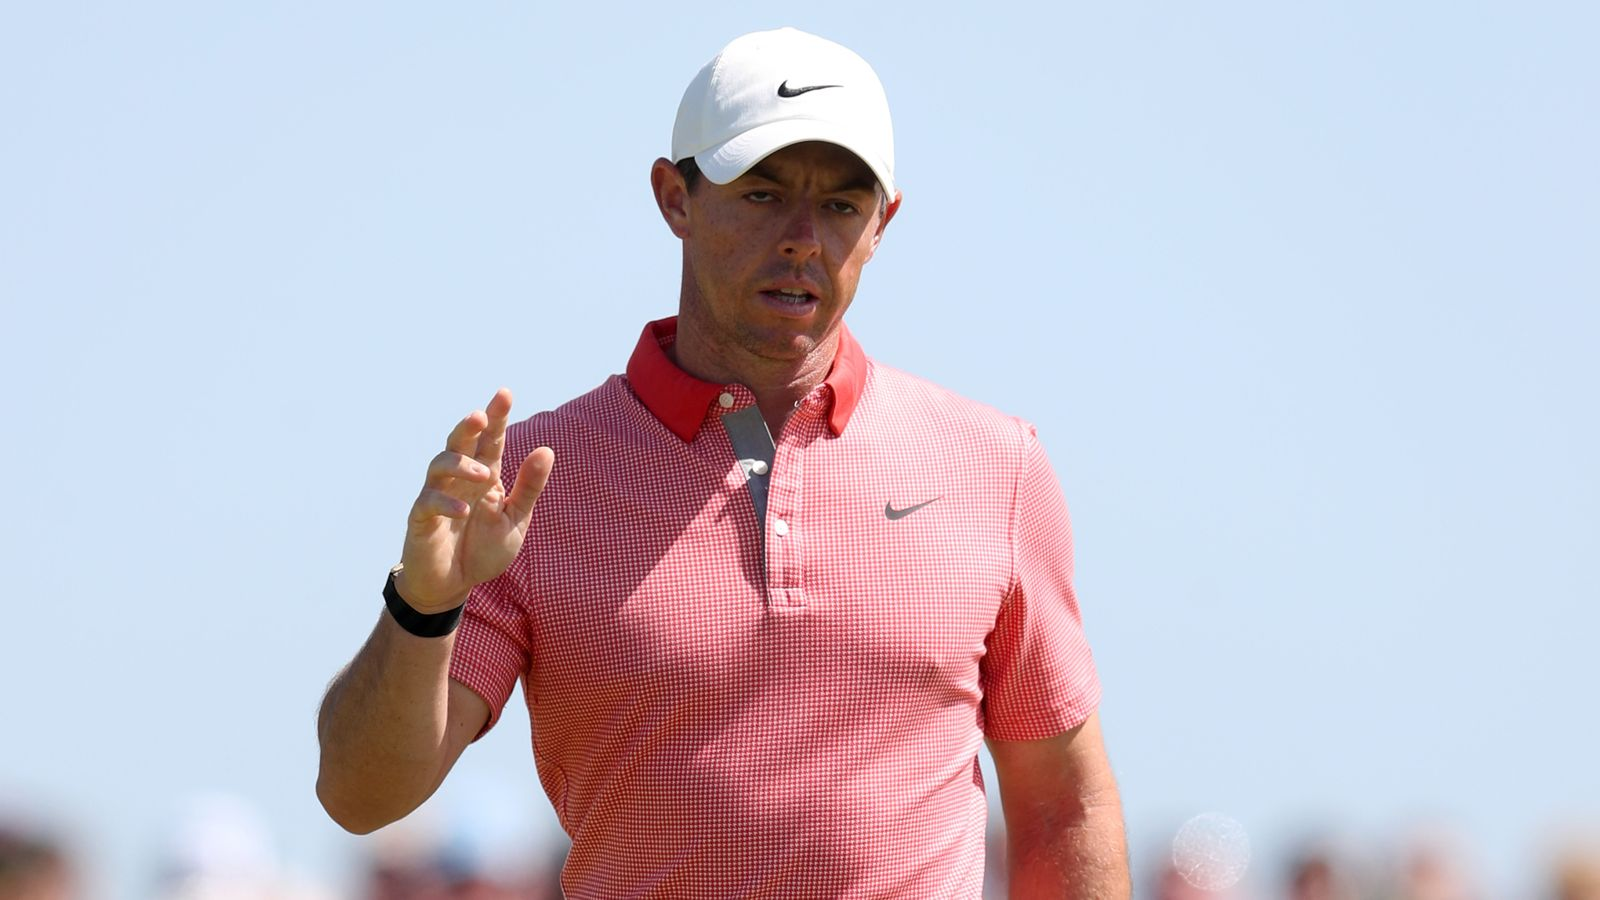 Rory McIlroy insists he is the best player in the world, but he has not played like that for 18 months | Golf News